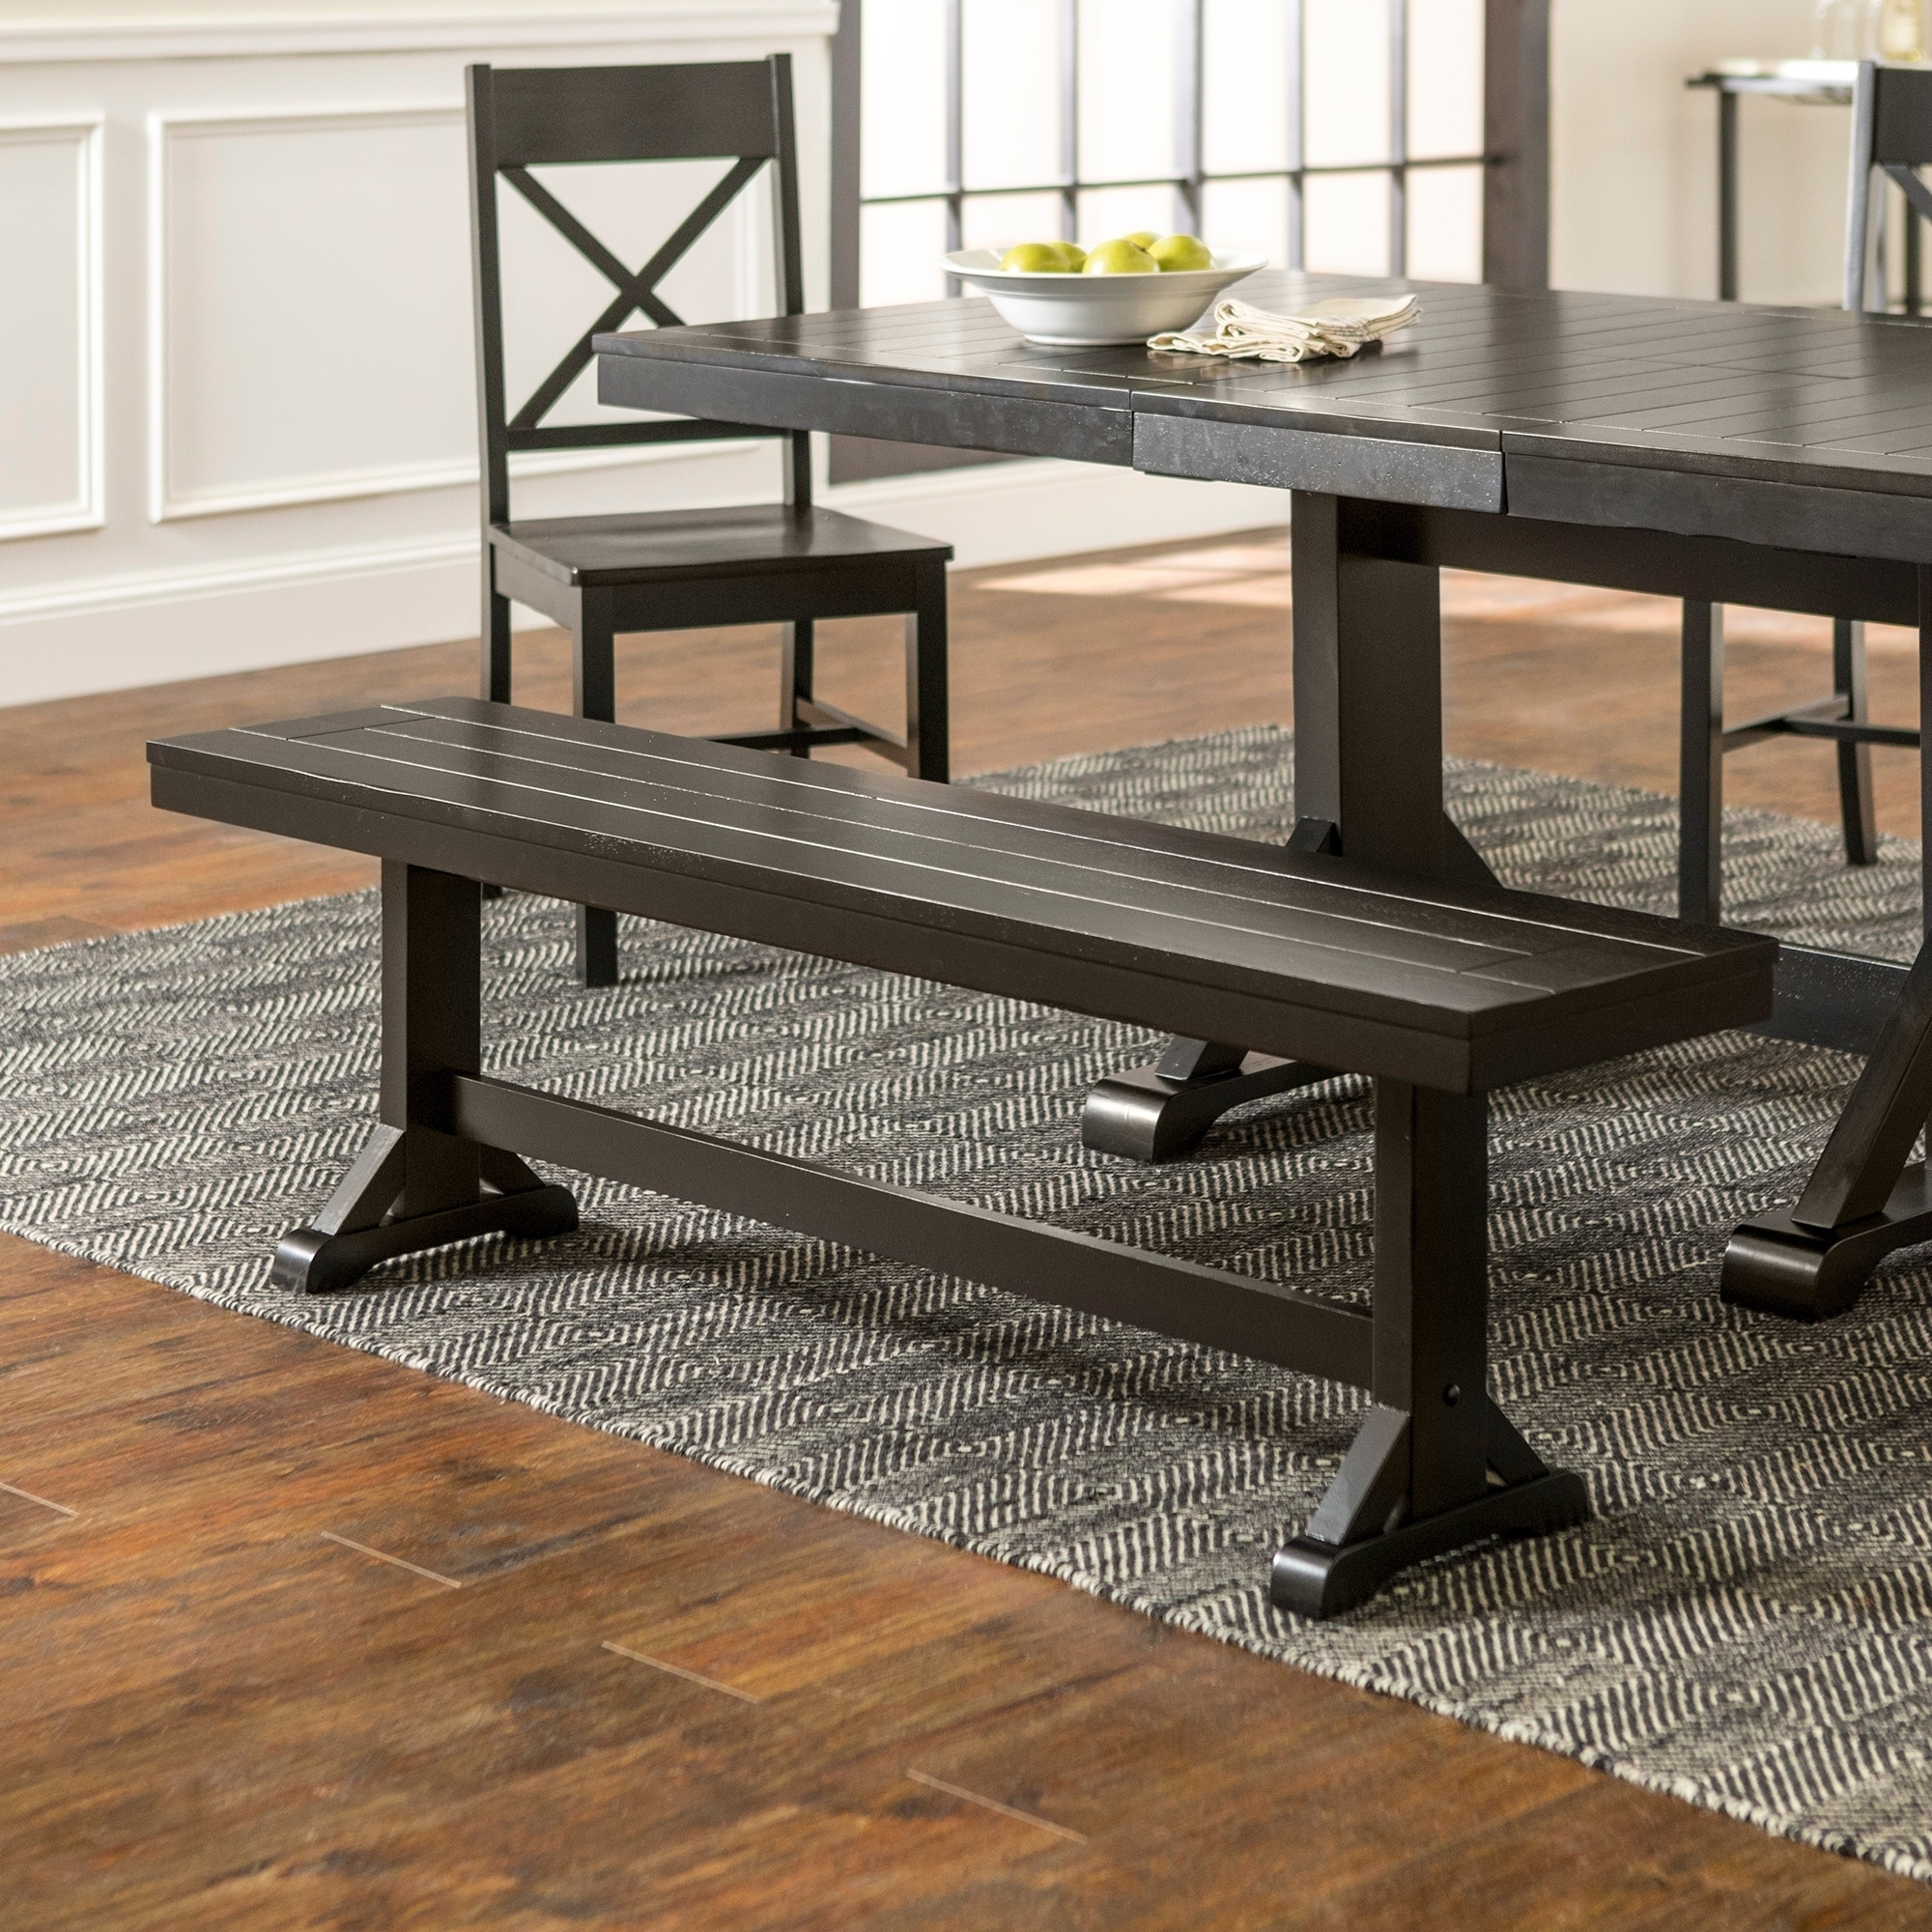 Miraculous 60 Dining Bench Black N A Alphanode Cool Chair Designs And Ideas Alphanodeonline